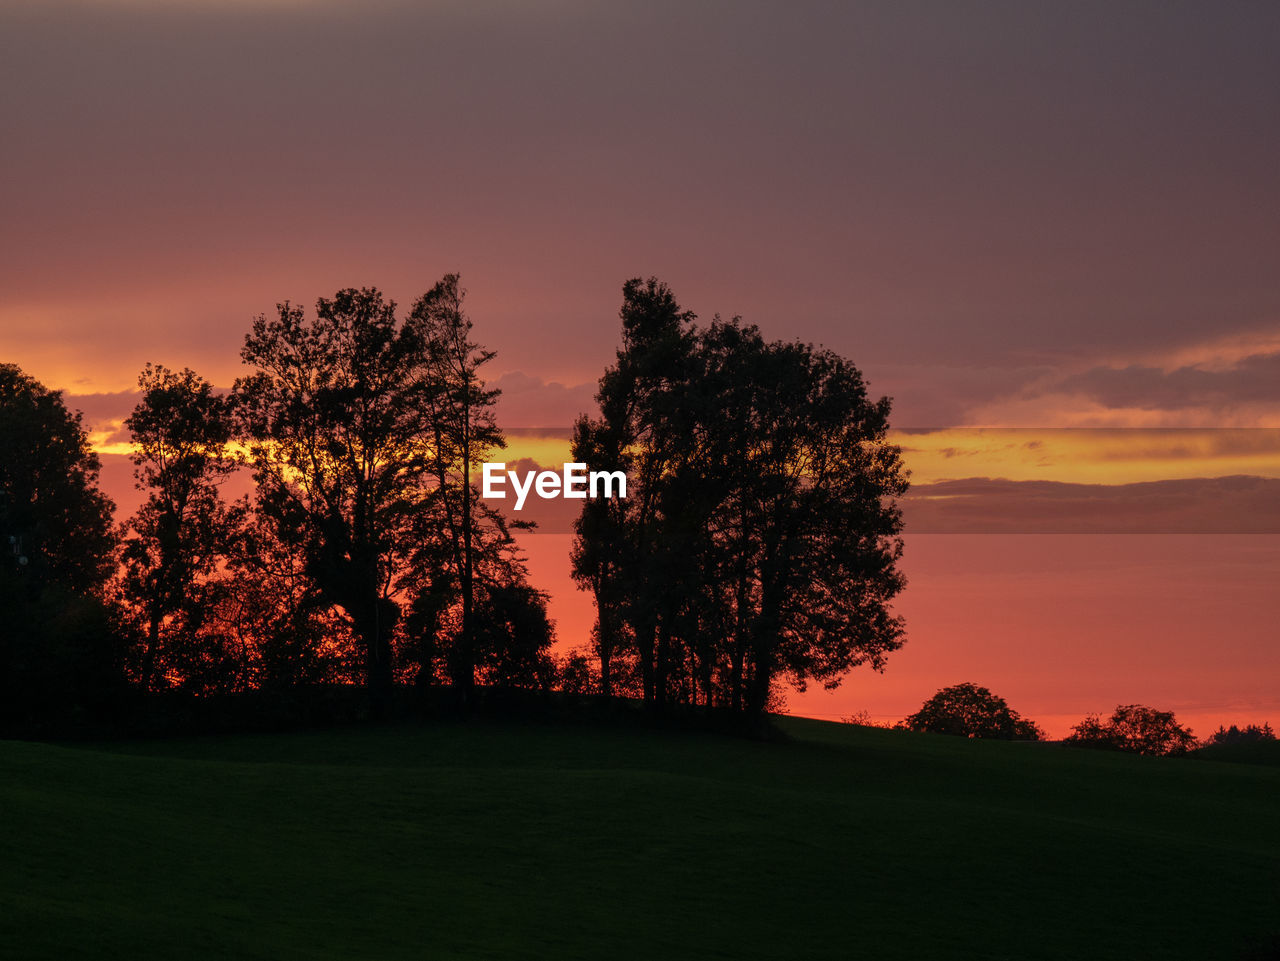 sky, sunset, tree, plant, beauty in nature, tranquil scene, scenics - nature, tranquility, orange color, field, idyllic, silhouette, environment, grass, no people, nature, landscape, non-urban scene, land, growth, outdoors